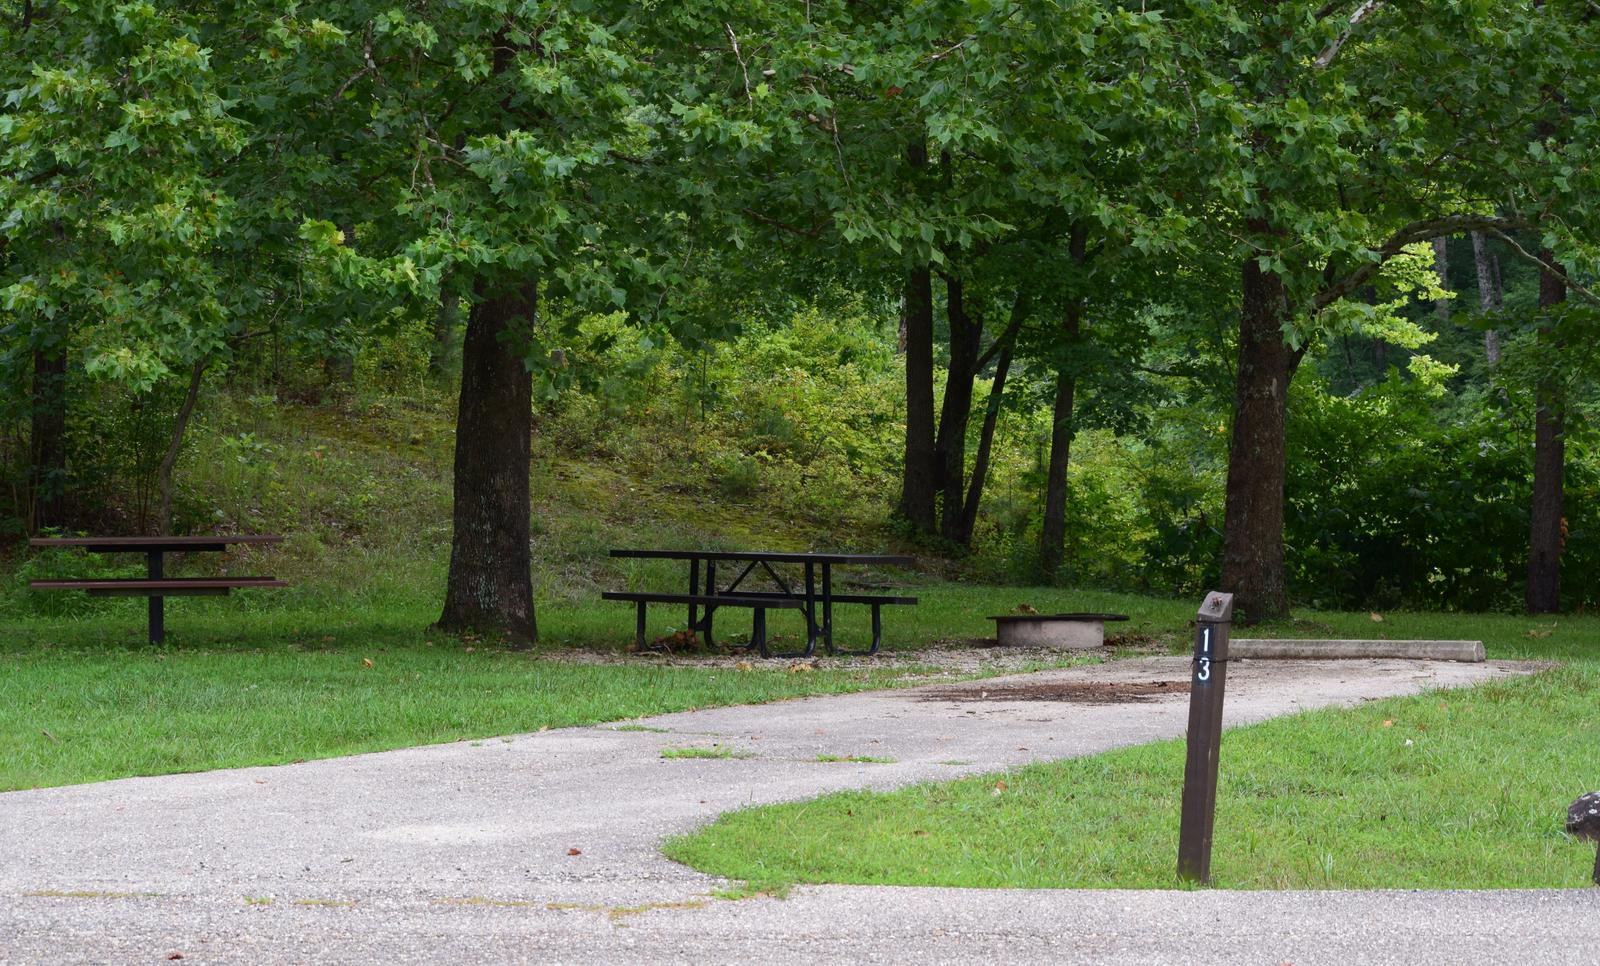 Campsite 13 showing parking spur, picnic tables, and fire ringCampsite 13